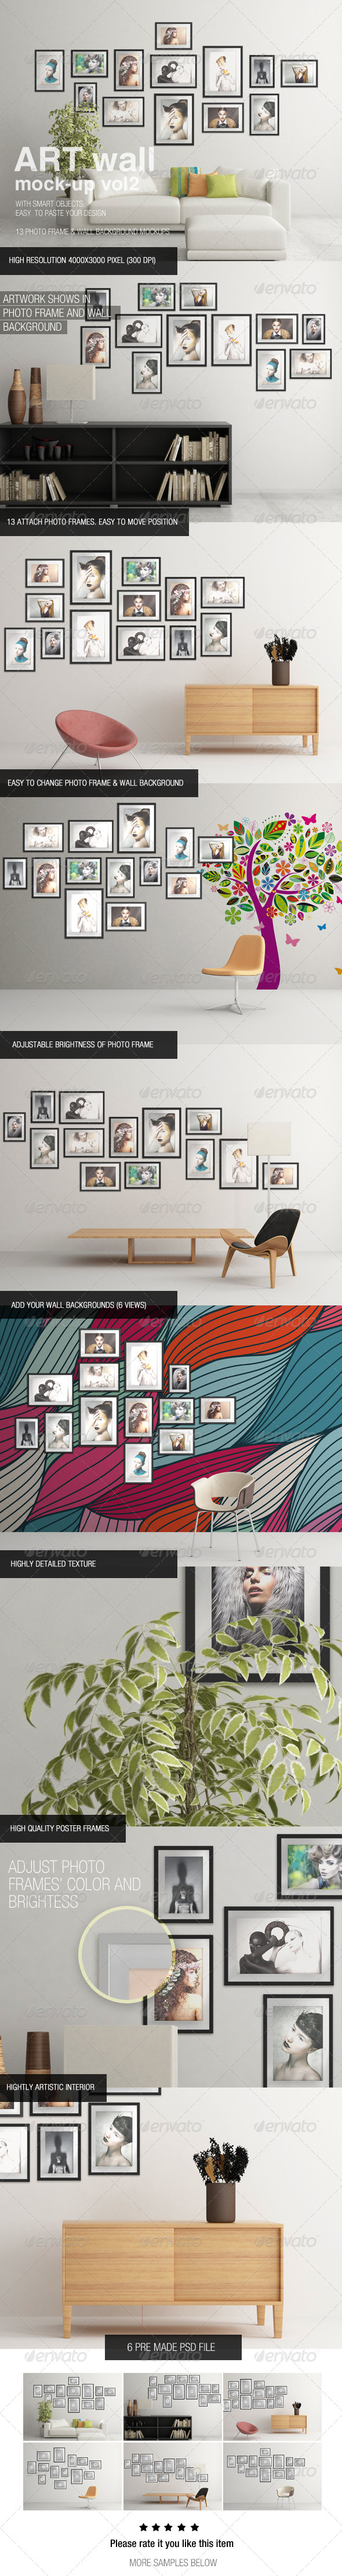 GraphicRiver Art Wall Mock-Up Vol.2 6453627